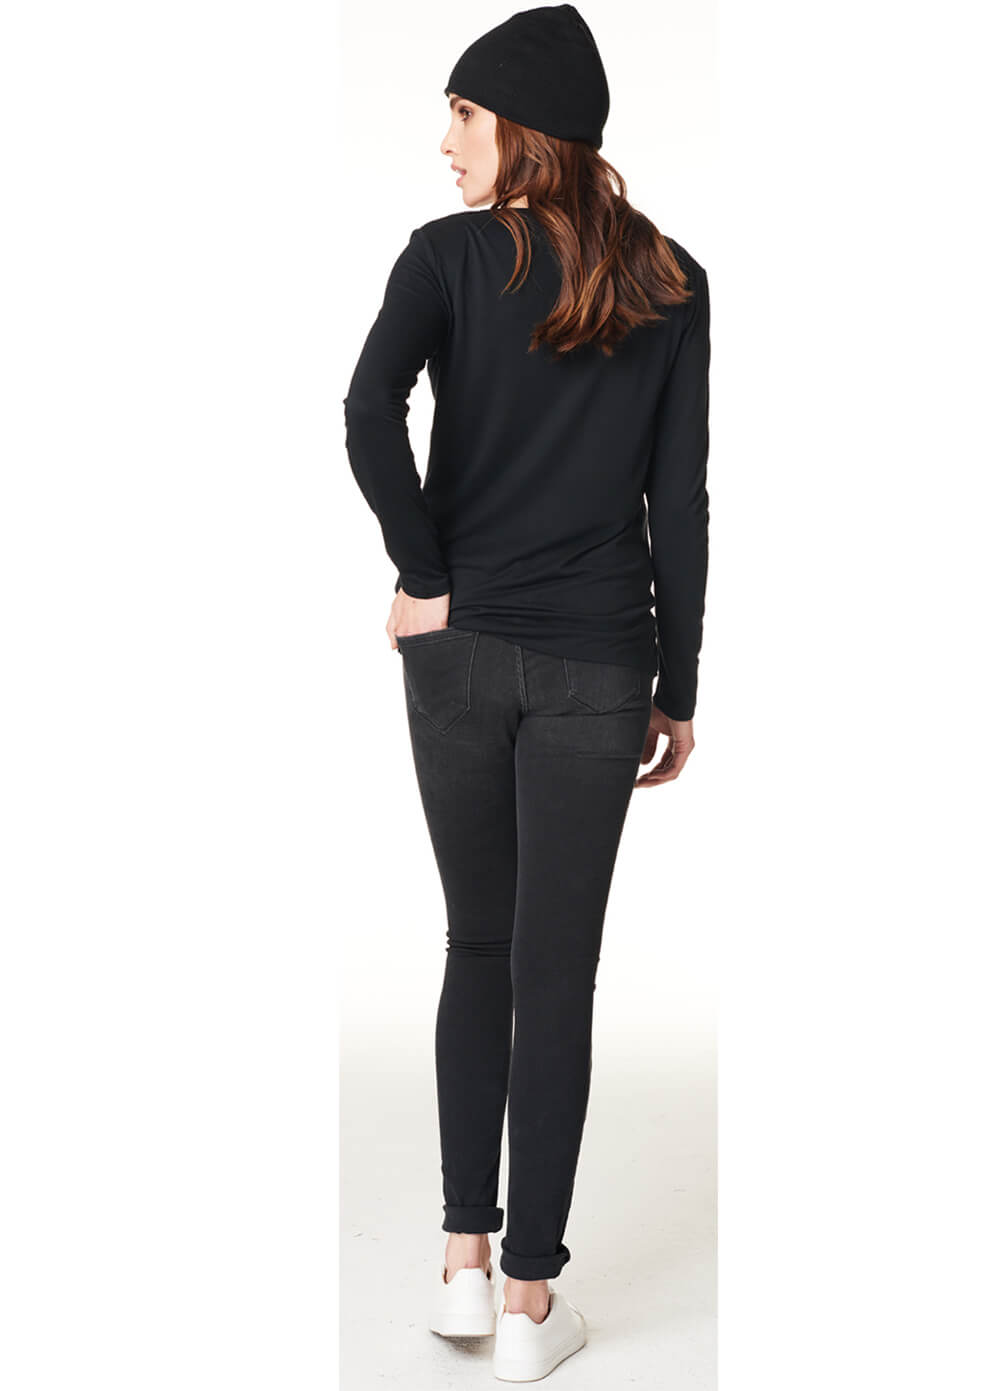 Gemma Knot Hem Maternity Nursing Shirt in Black by Noppies